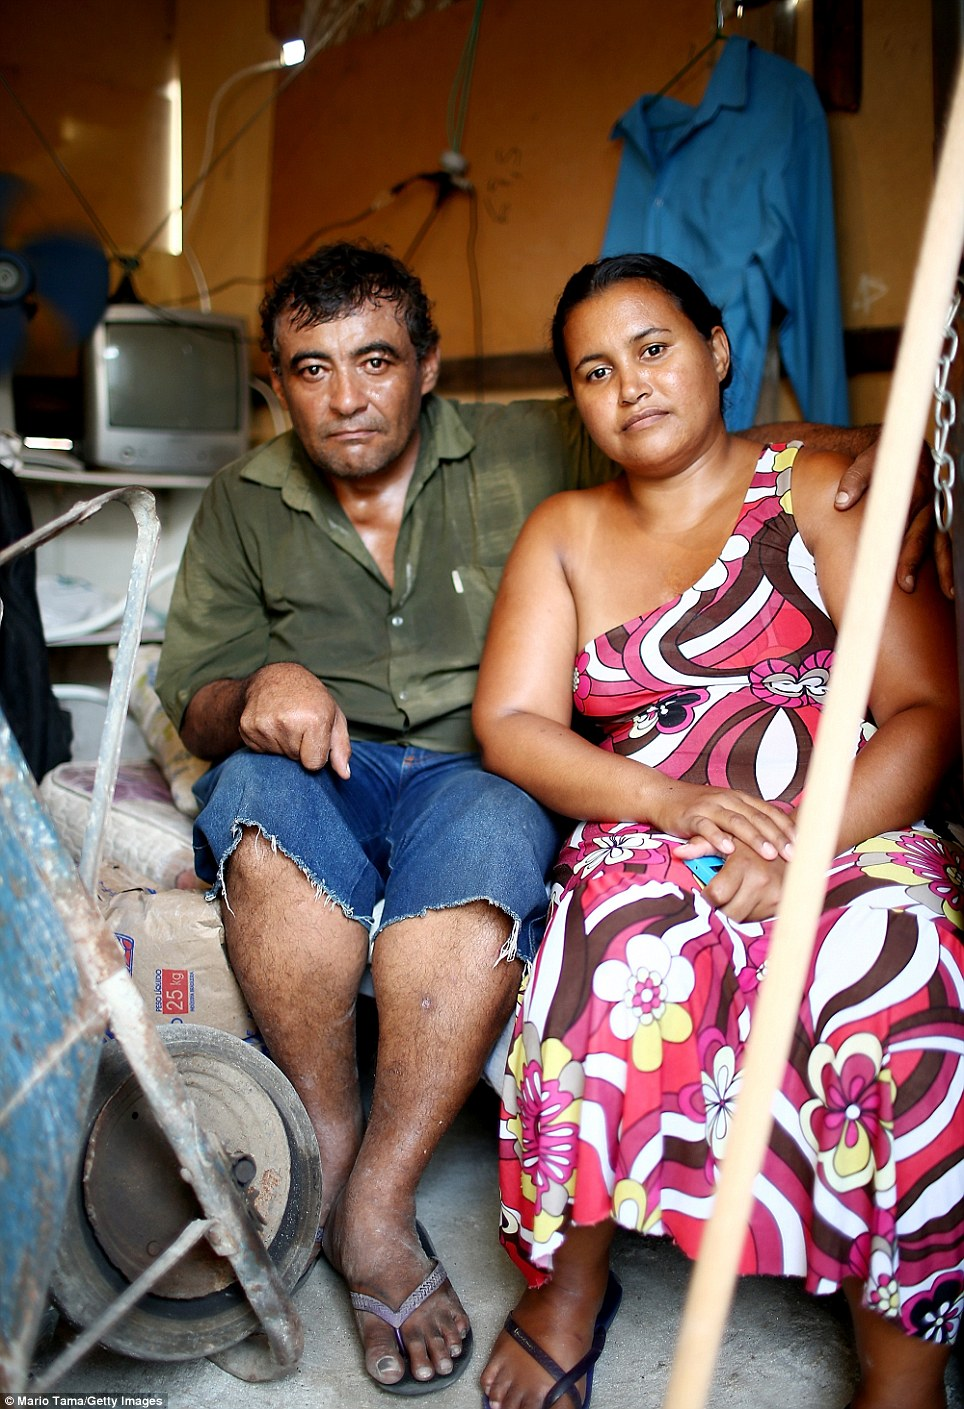 Joao Batista da Silva (left) and wife Gizelda Alves da Silva pose on their bed in the Complexo da Mare slum. Police have been criticised for violent control tactics in the slums. Last year, police were charged after bricklayer Amarildo de Souza, who lived in the city's biggest shanty town Roncinha, was tortured and murdered